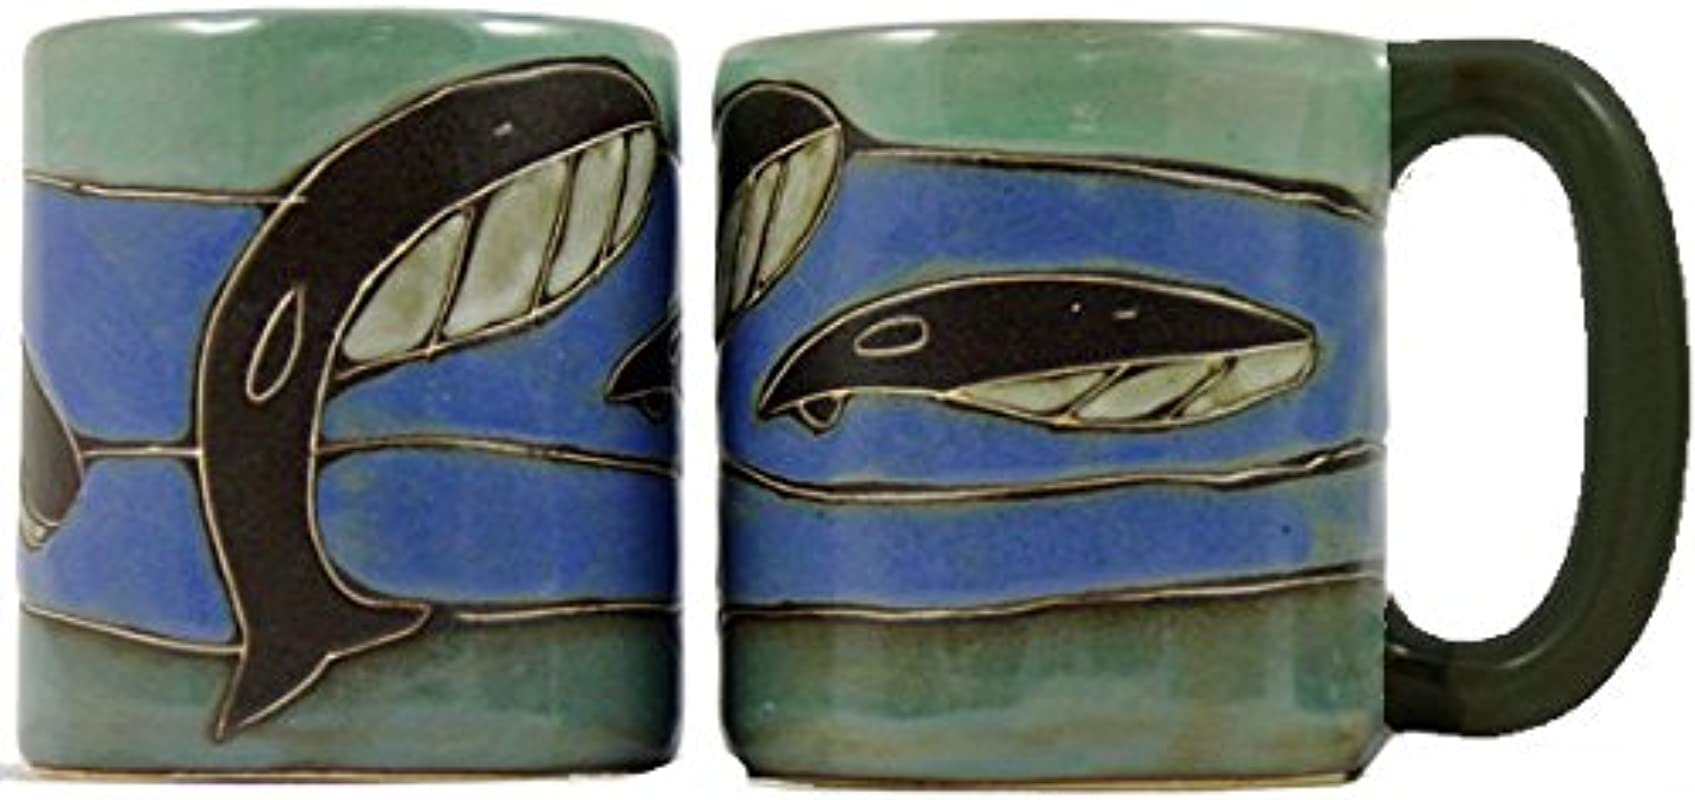 One 1 MARA STONEWARE COLLECTION 16 Oz Coffee Cup Collectible Dinner Mug Whale Ocean Blue Design